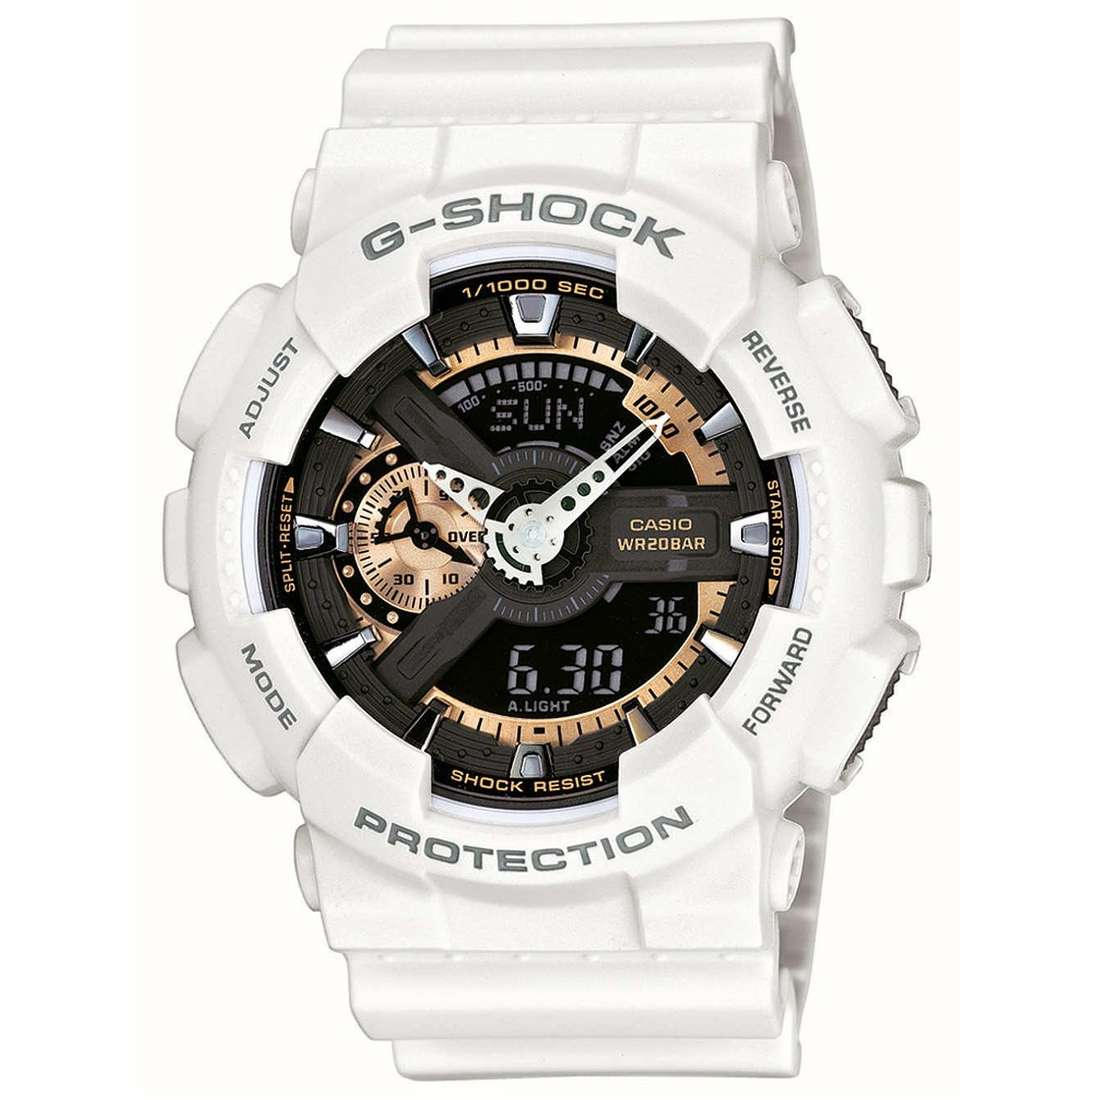 watch chronograph man Casio G-Shock GA-110RG-7AER